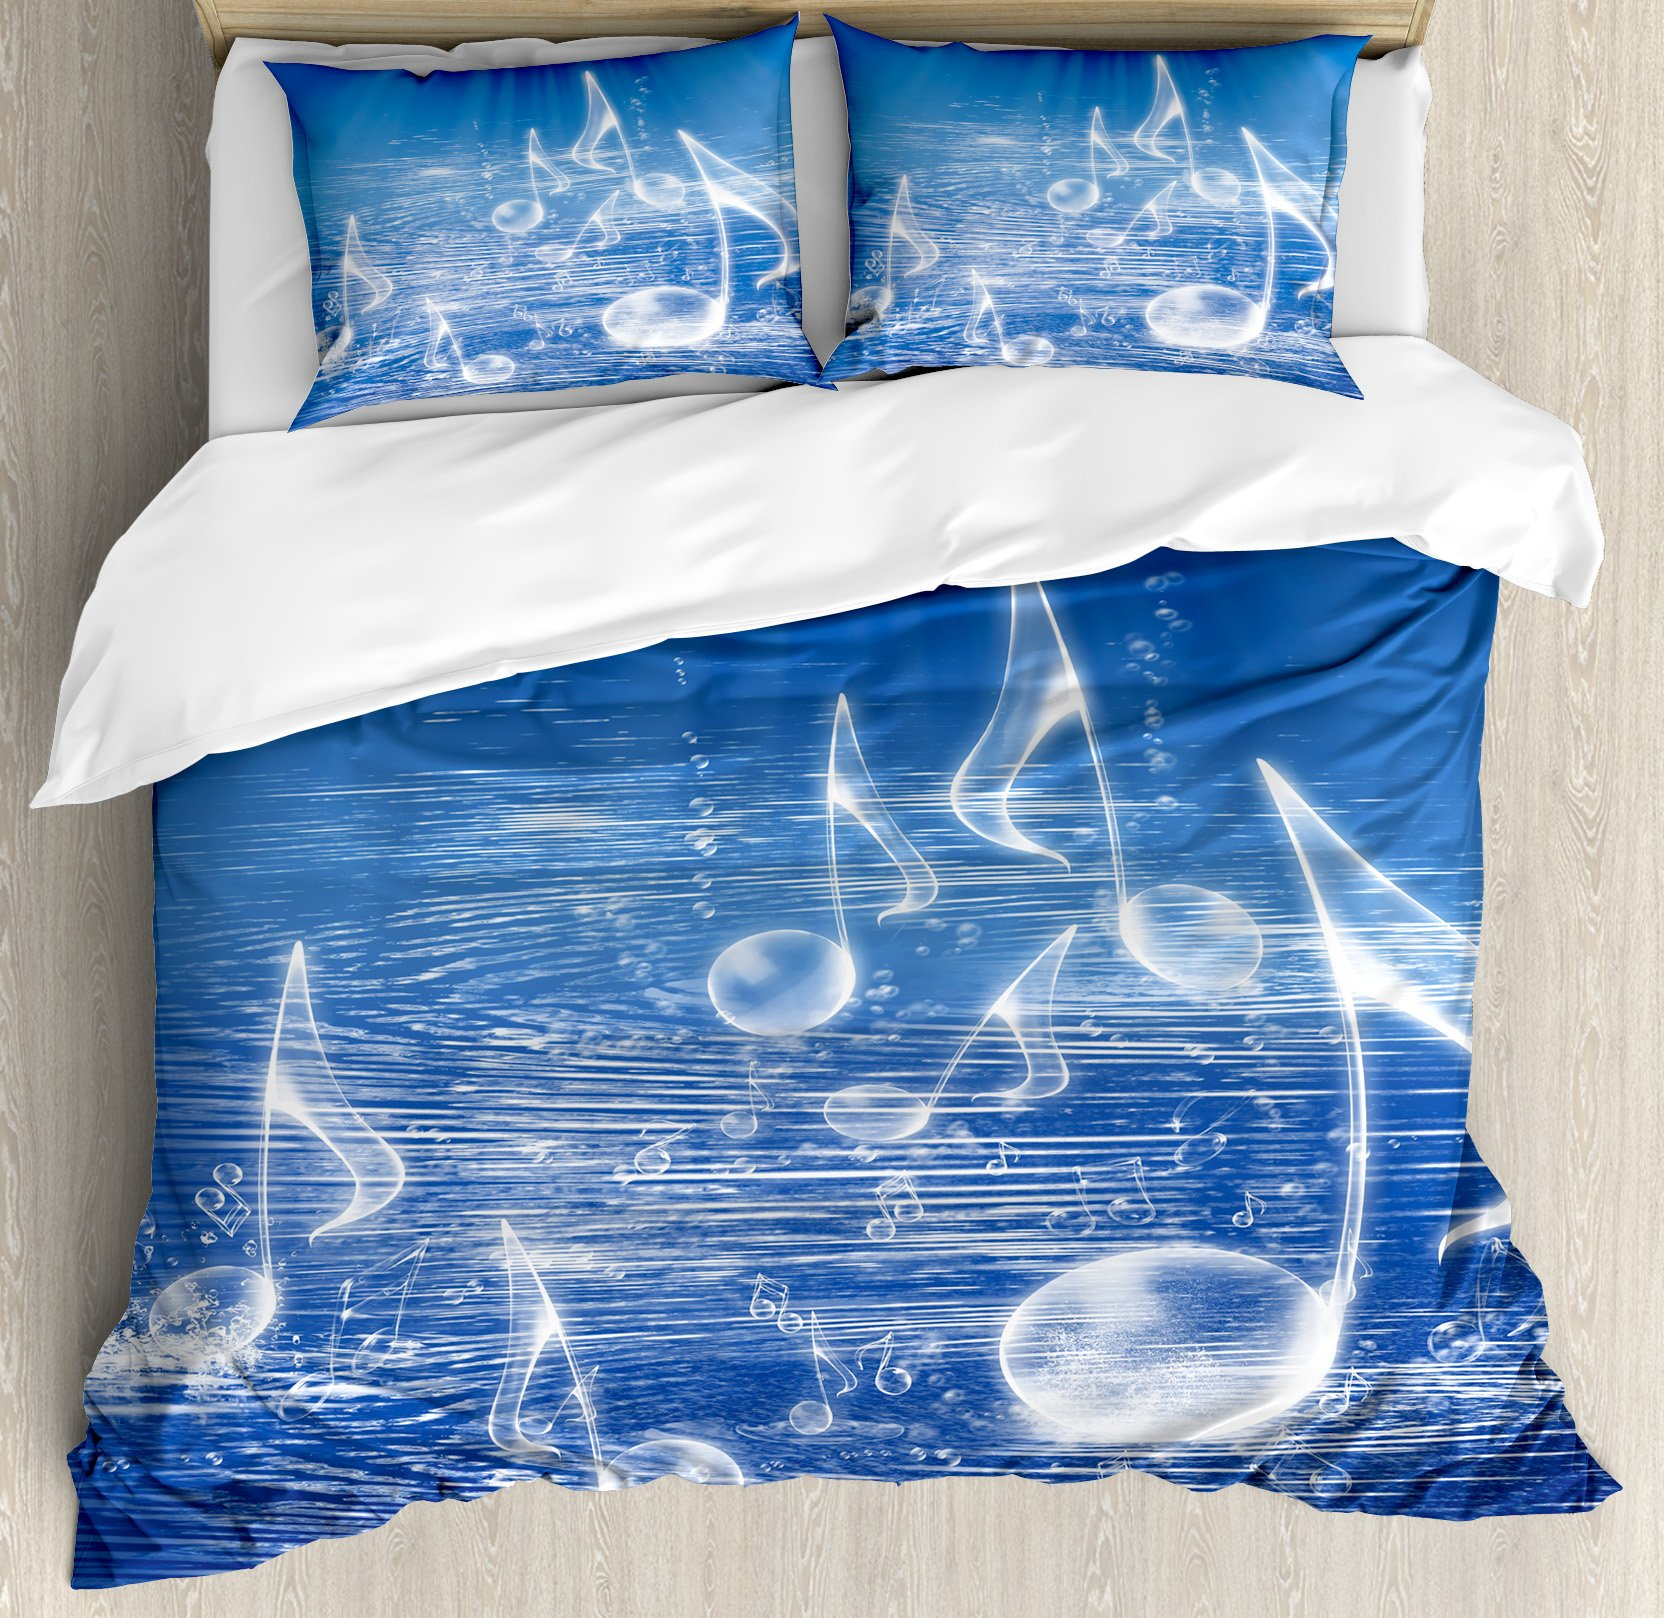 Music Decor Duvet Cover Set by Ambesonne, Magical Water with Musical Notes Bubbles and Dancing Waves Fantasy Music More Than Real Decor, 3 Piece Bedding Set with Pillow Shams, Queen / Full, Blue